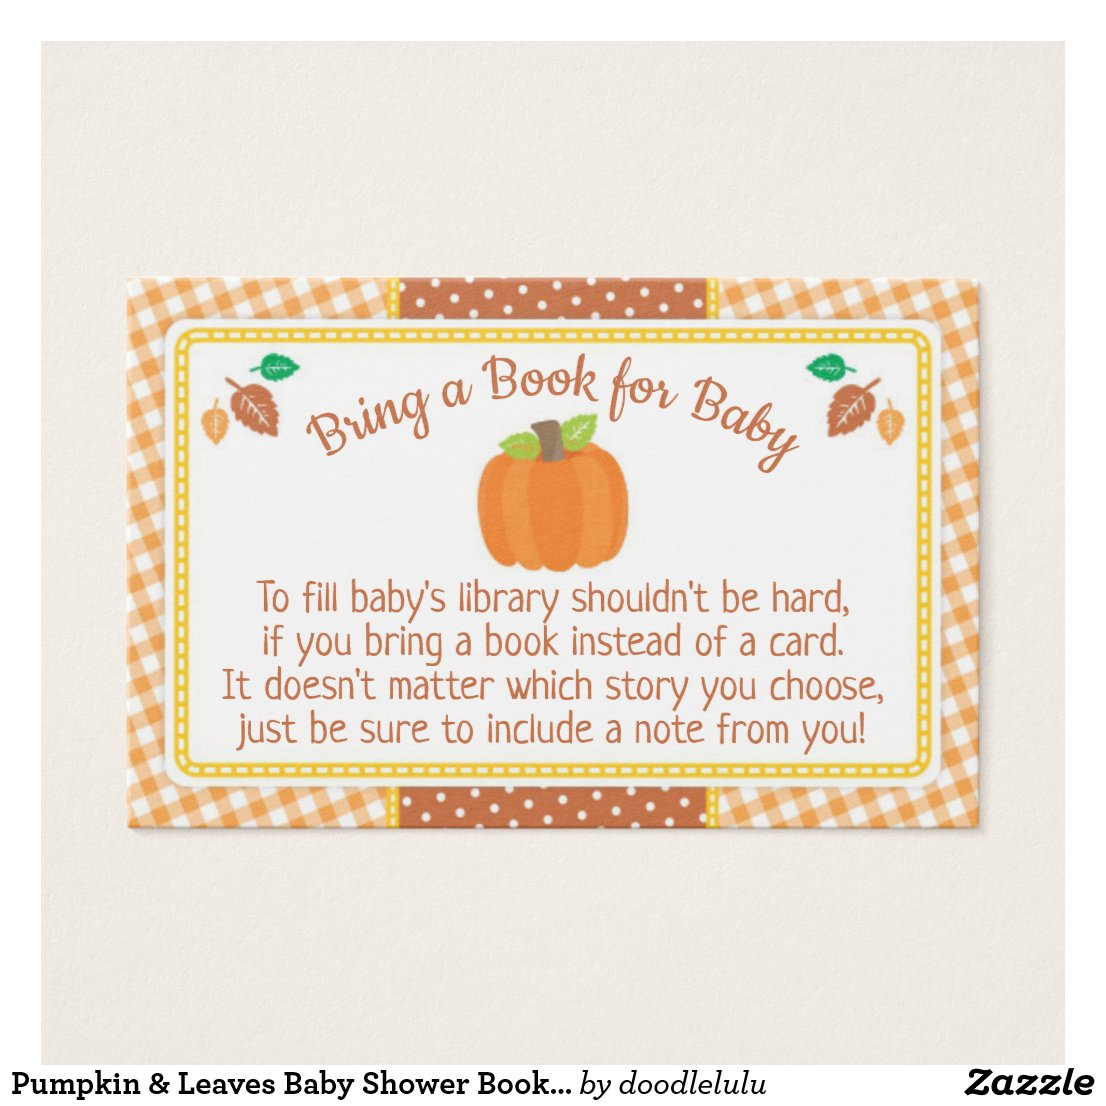 Pumpkin & Leaves Baby Shower Book Request Card